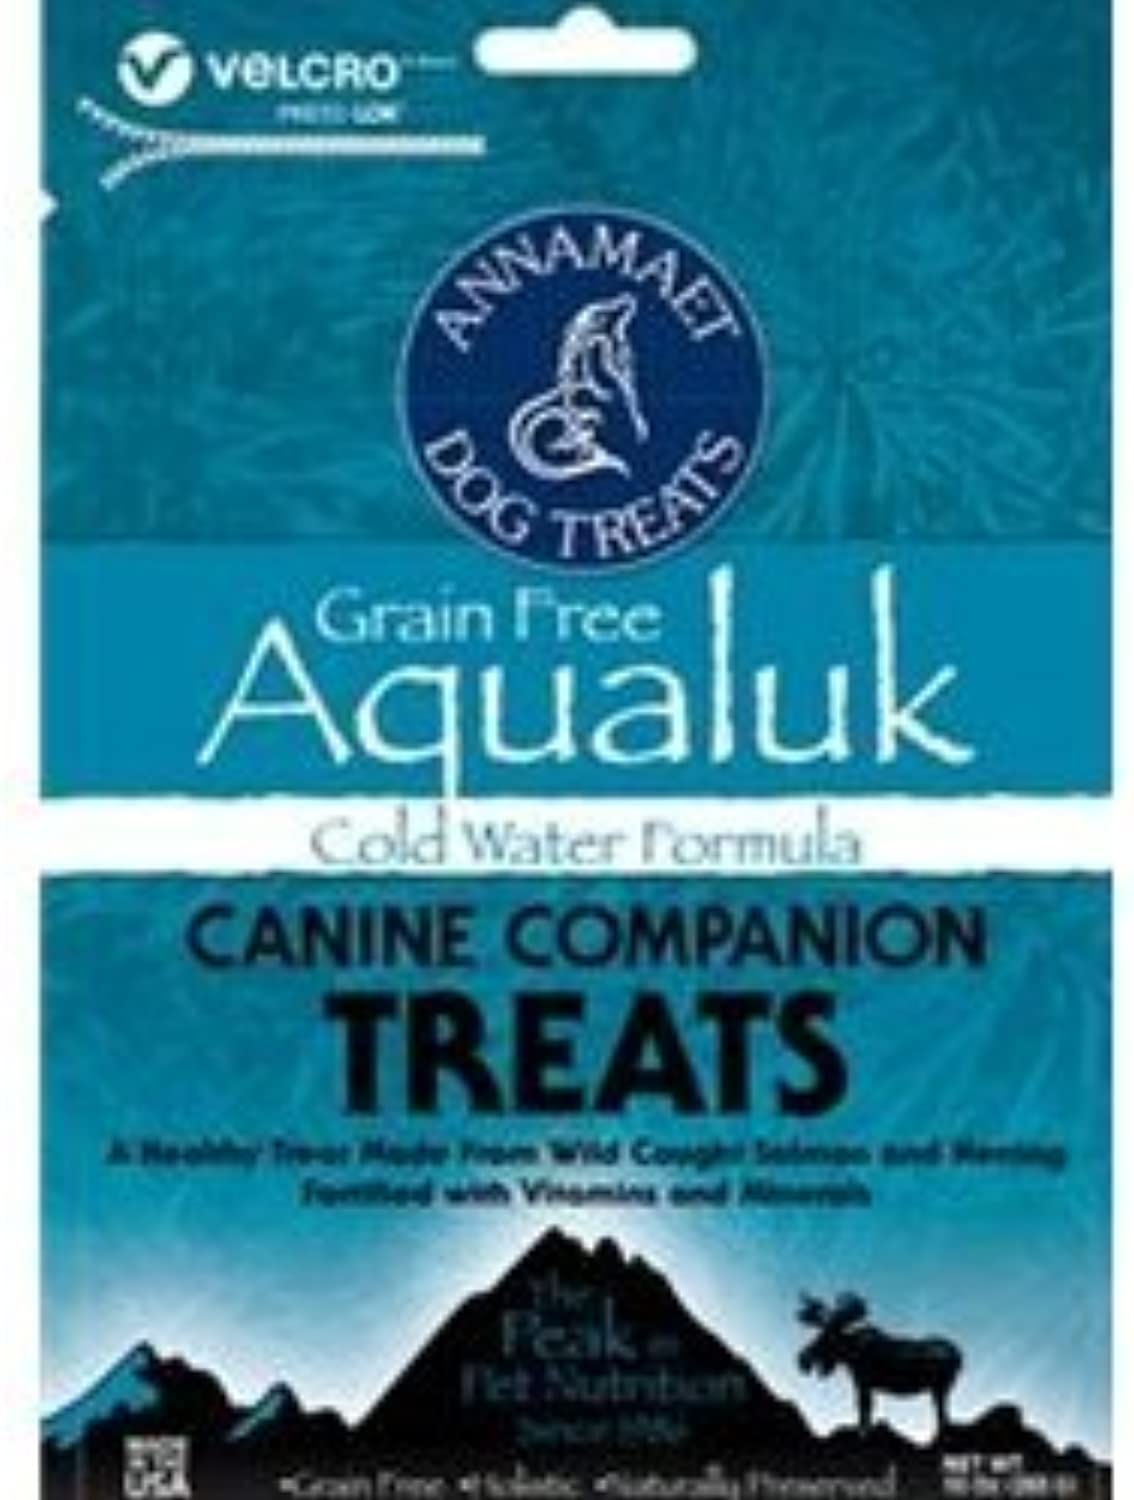 Annamaet GrainFree Aqualuk Cold Water Formula Dog Treats, 10oz bag by Annamaet